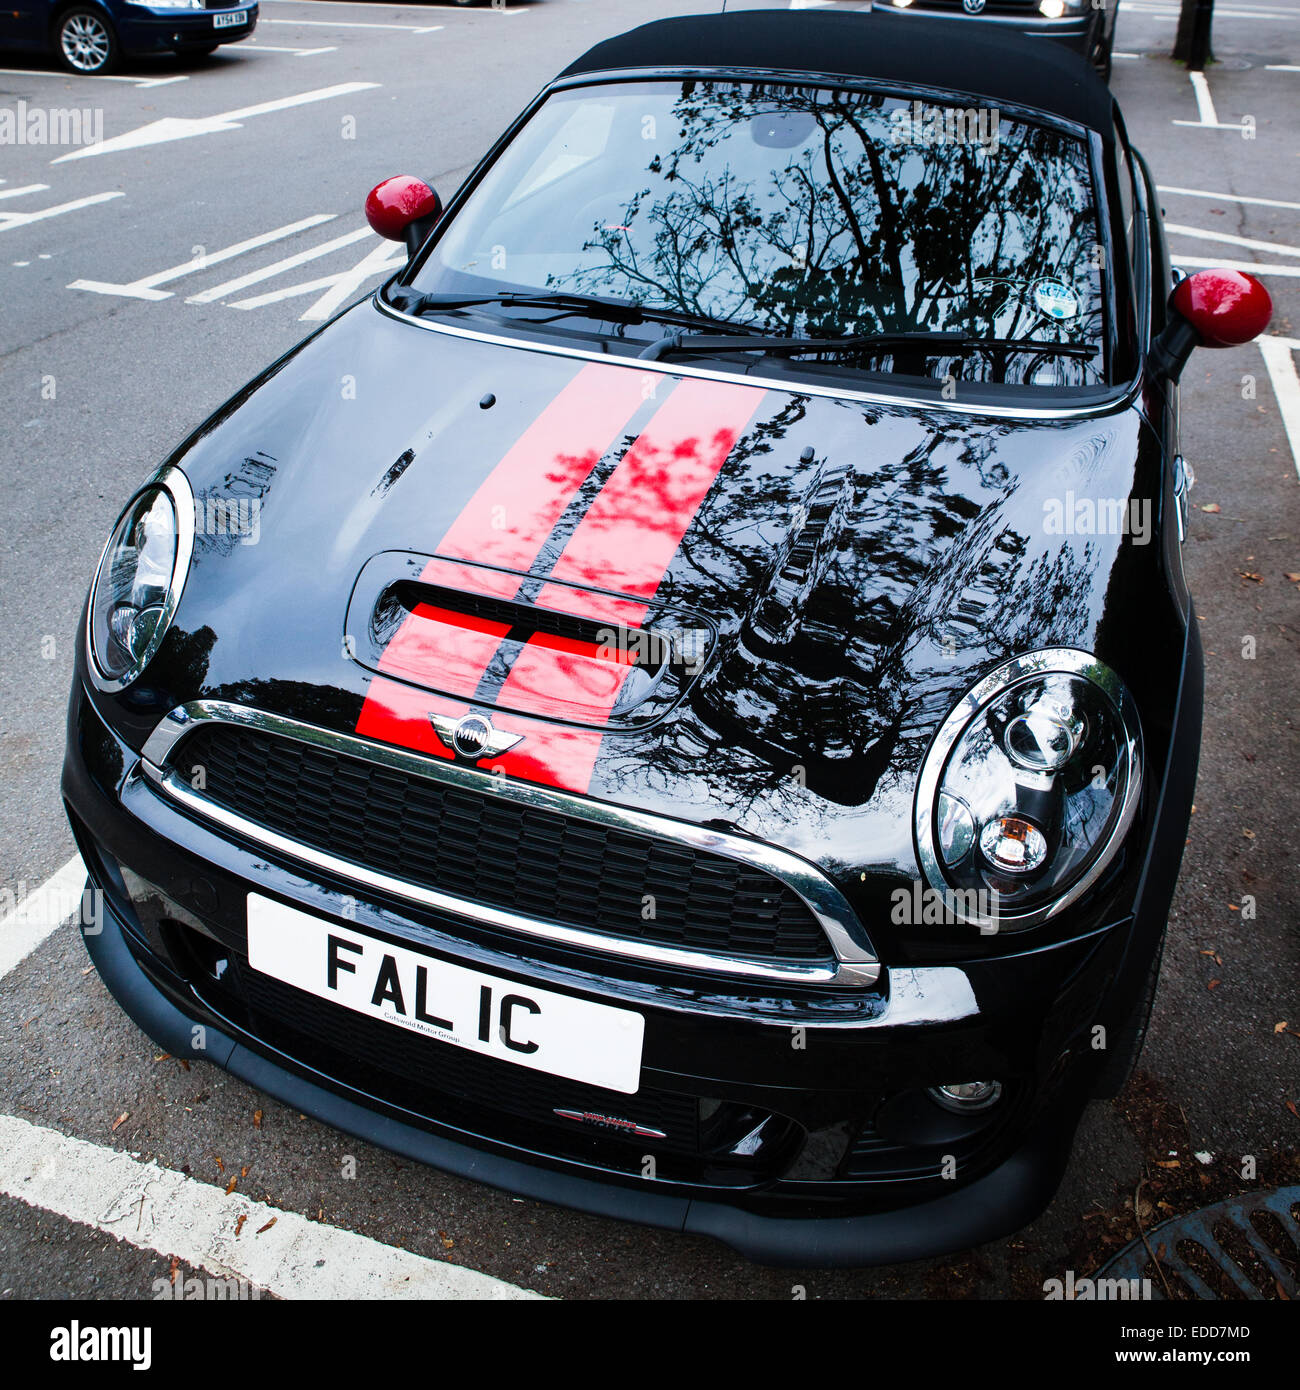 black convertible mini cooper car with red stripes and a. Black Bedroom Furniture Sets. Home Design Ideas